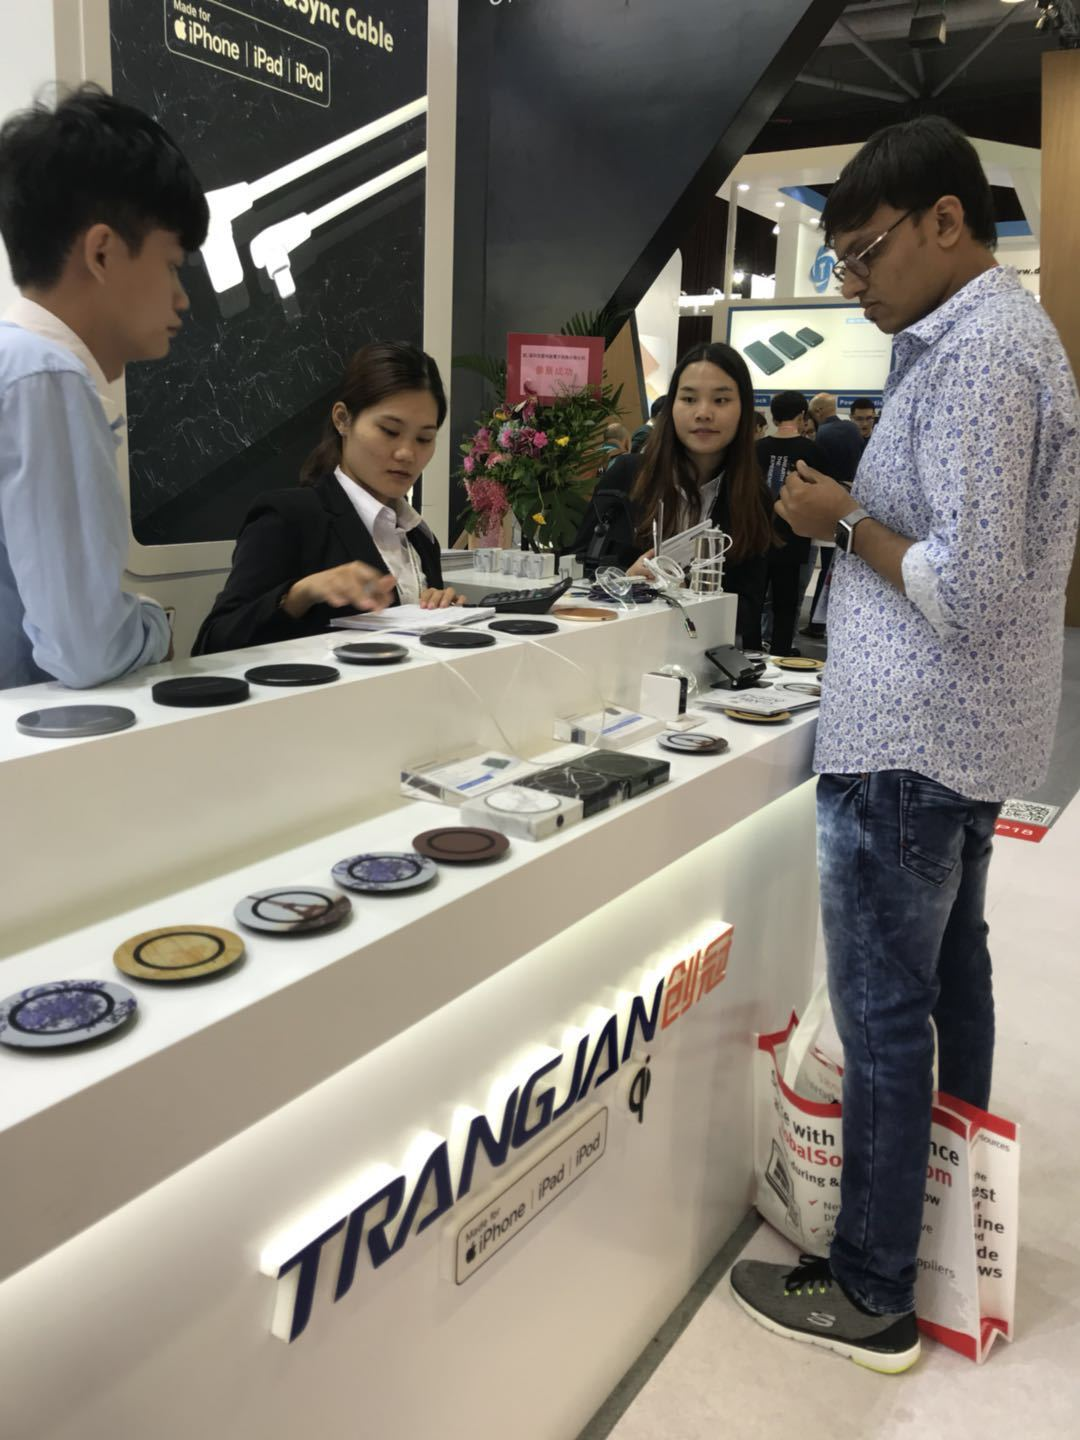 Trangjan is joining The Global Sources Mobile Electronics Fa